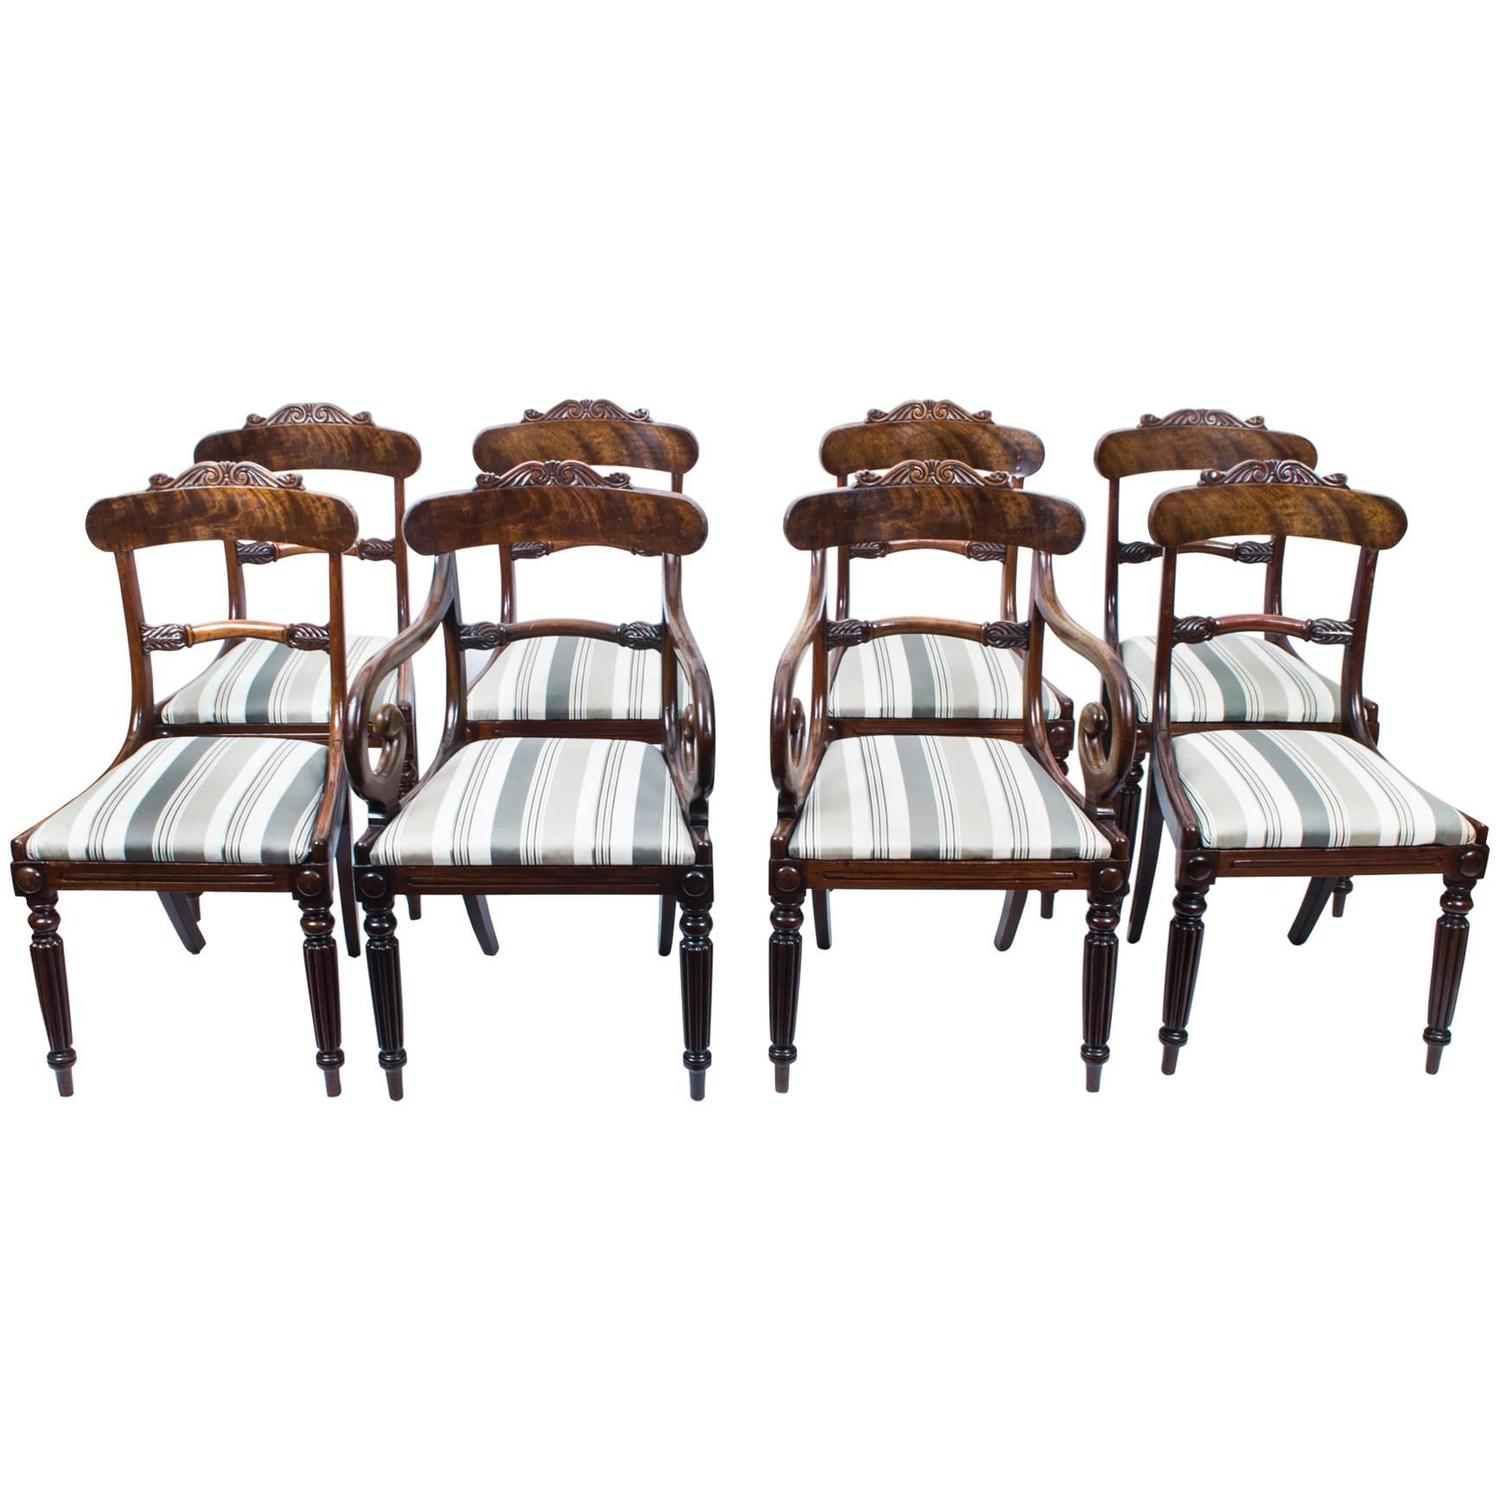 Antique Set of Eight Regency Flame Mahogany Dining Chairs circa